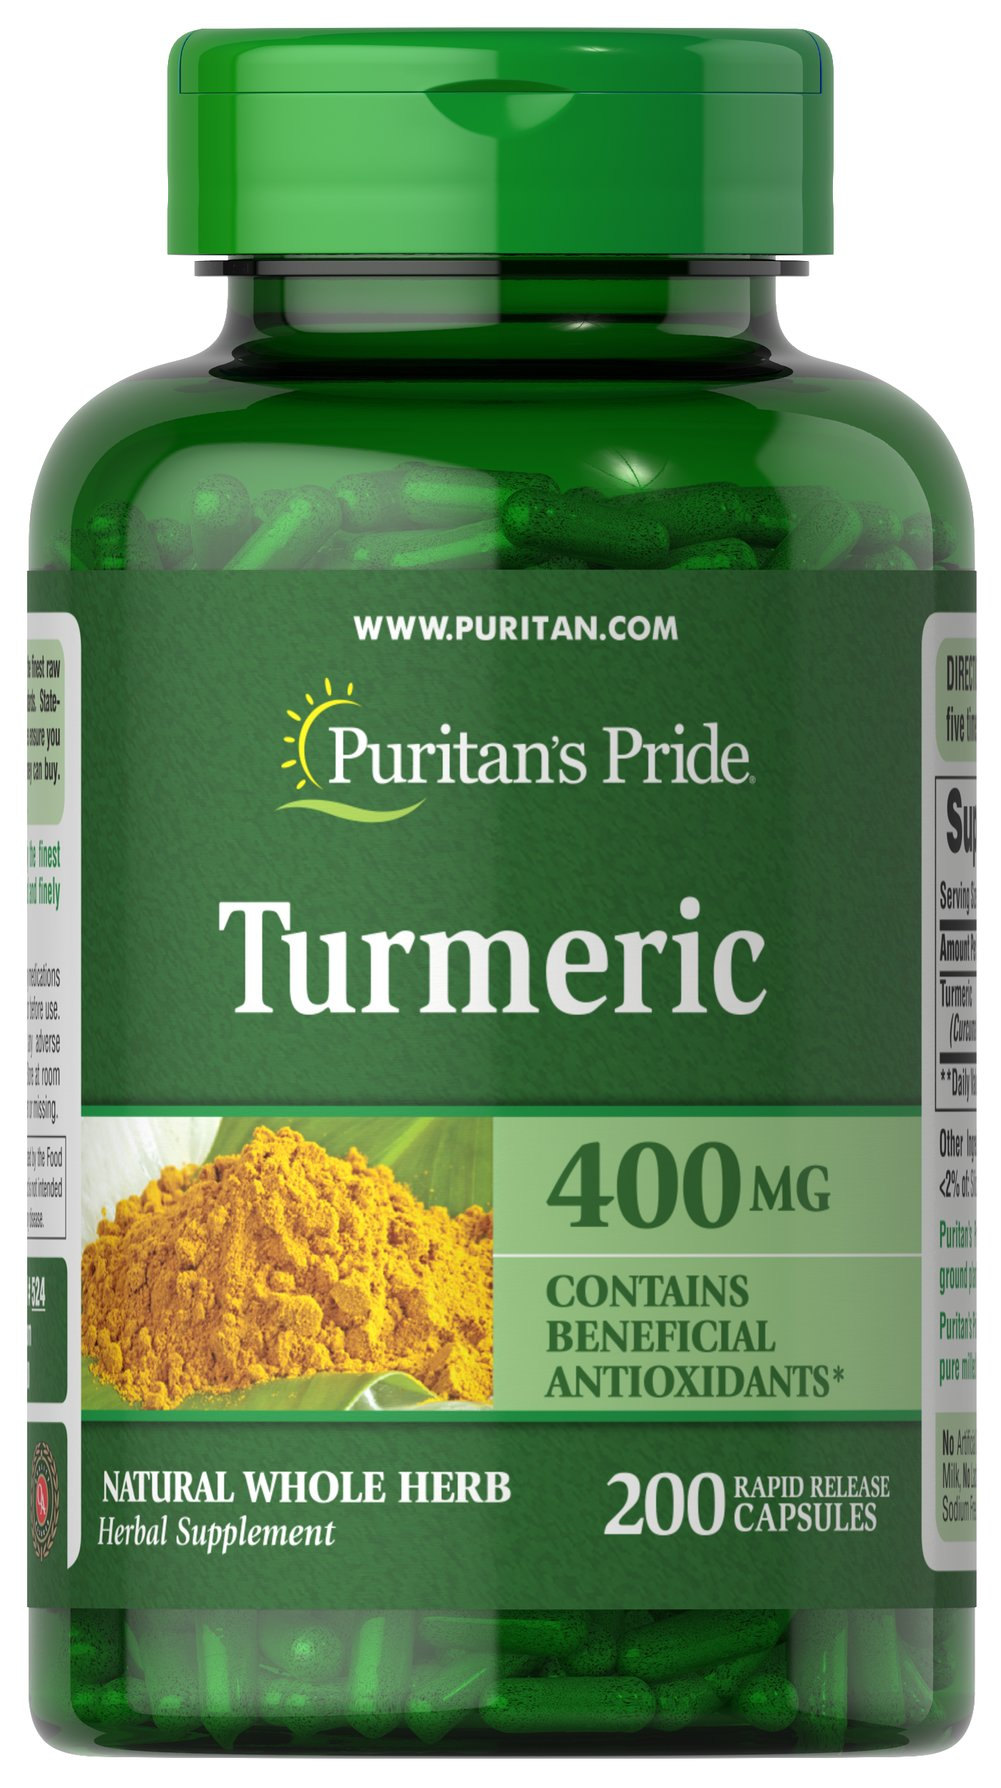 Turmeric 400 mg <p>Turmeric, a common spice used in curry dishes, has become a popular herbal supplement due to its potential antioxidant properties, which may contribute to brain health.** Available in 400 mg capsules, adults can take one capsule three to six times daily with meals. Capsules may be opened and prepared as a tea.</p>  200 Capsules 400 mg $15.99